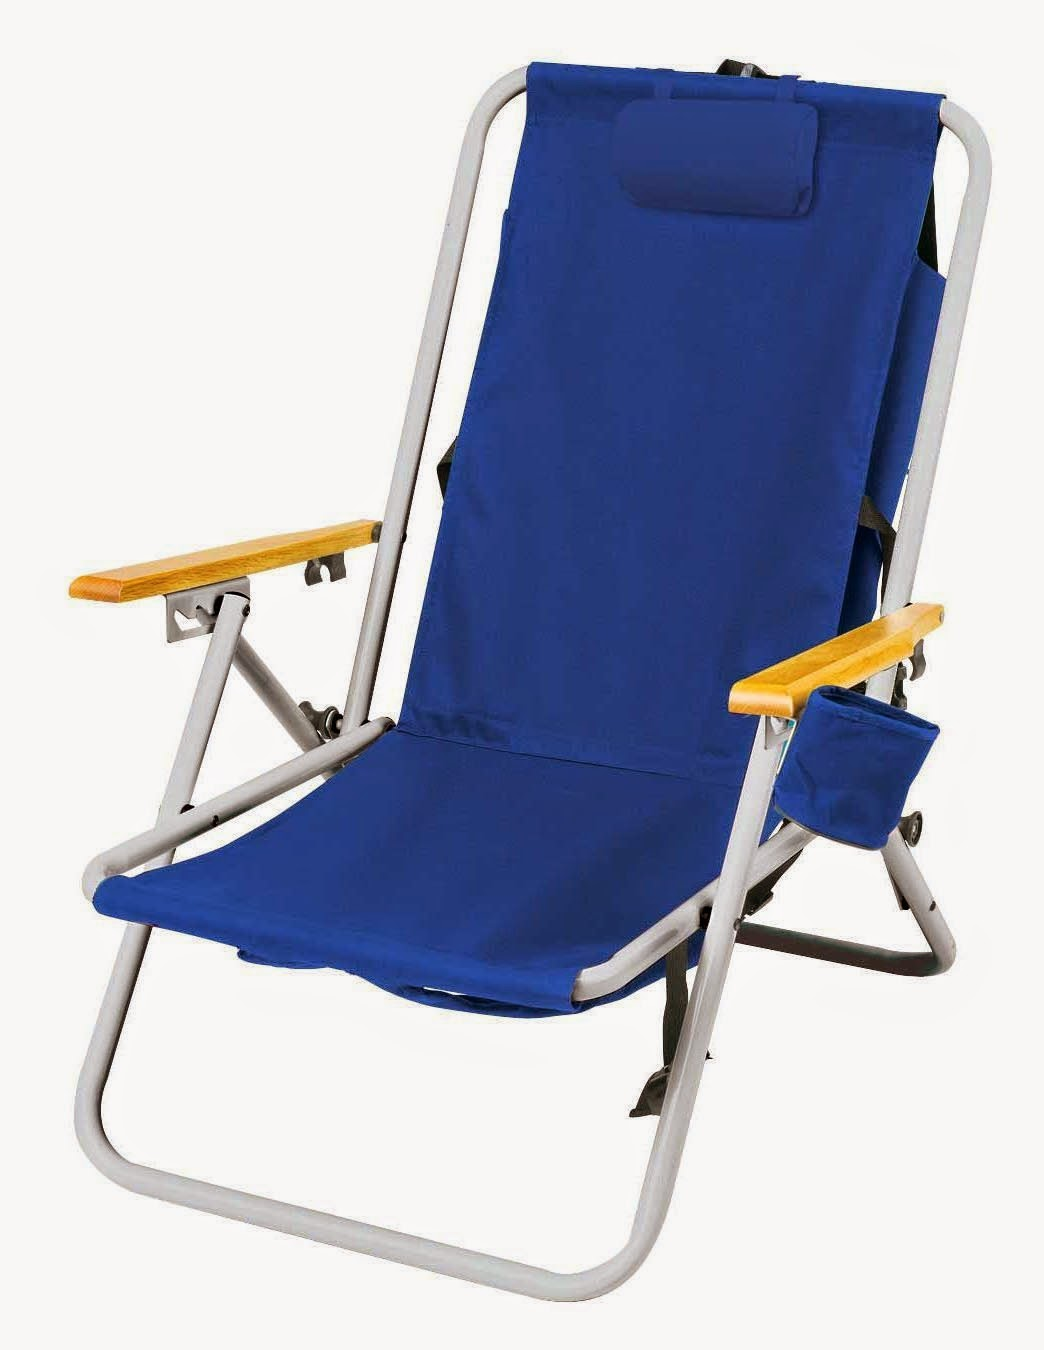 Cheap Folding Beach Chairs Cheap Beach Chairs Folding Beach Chairs